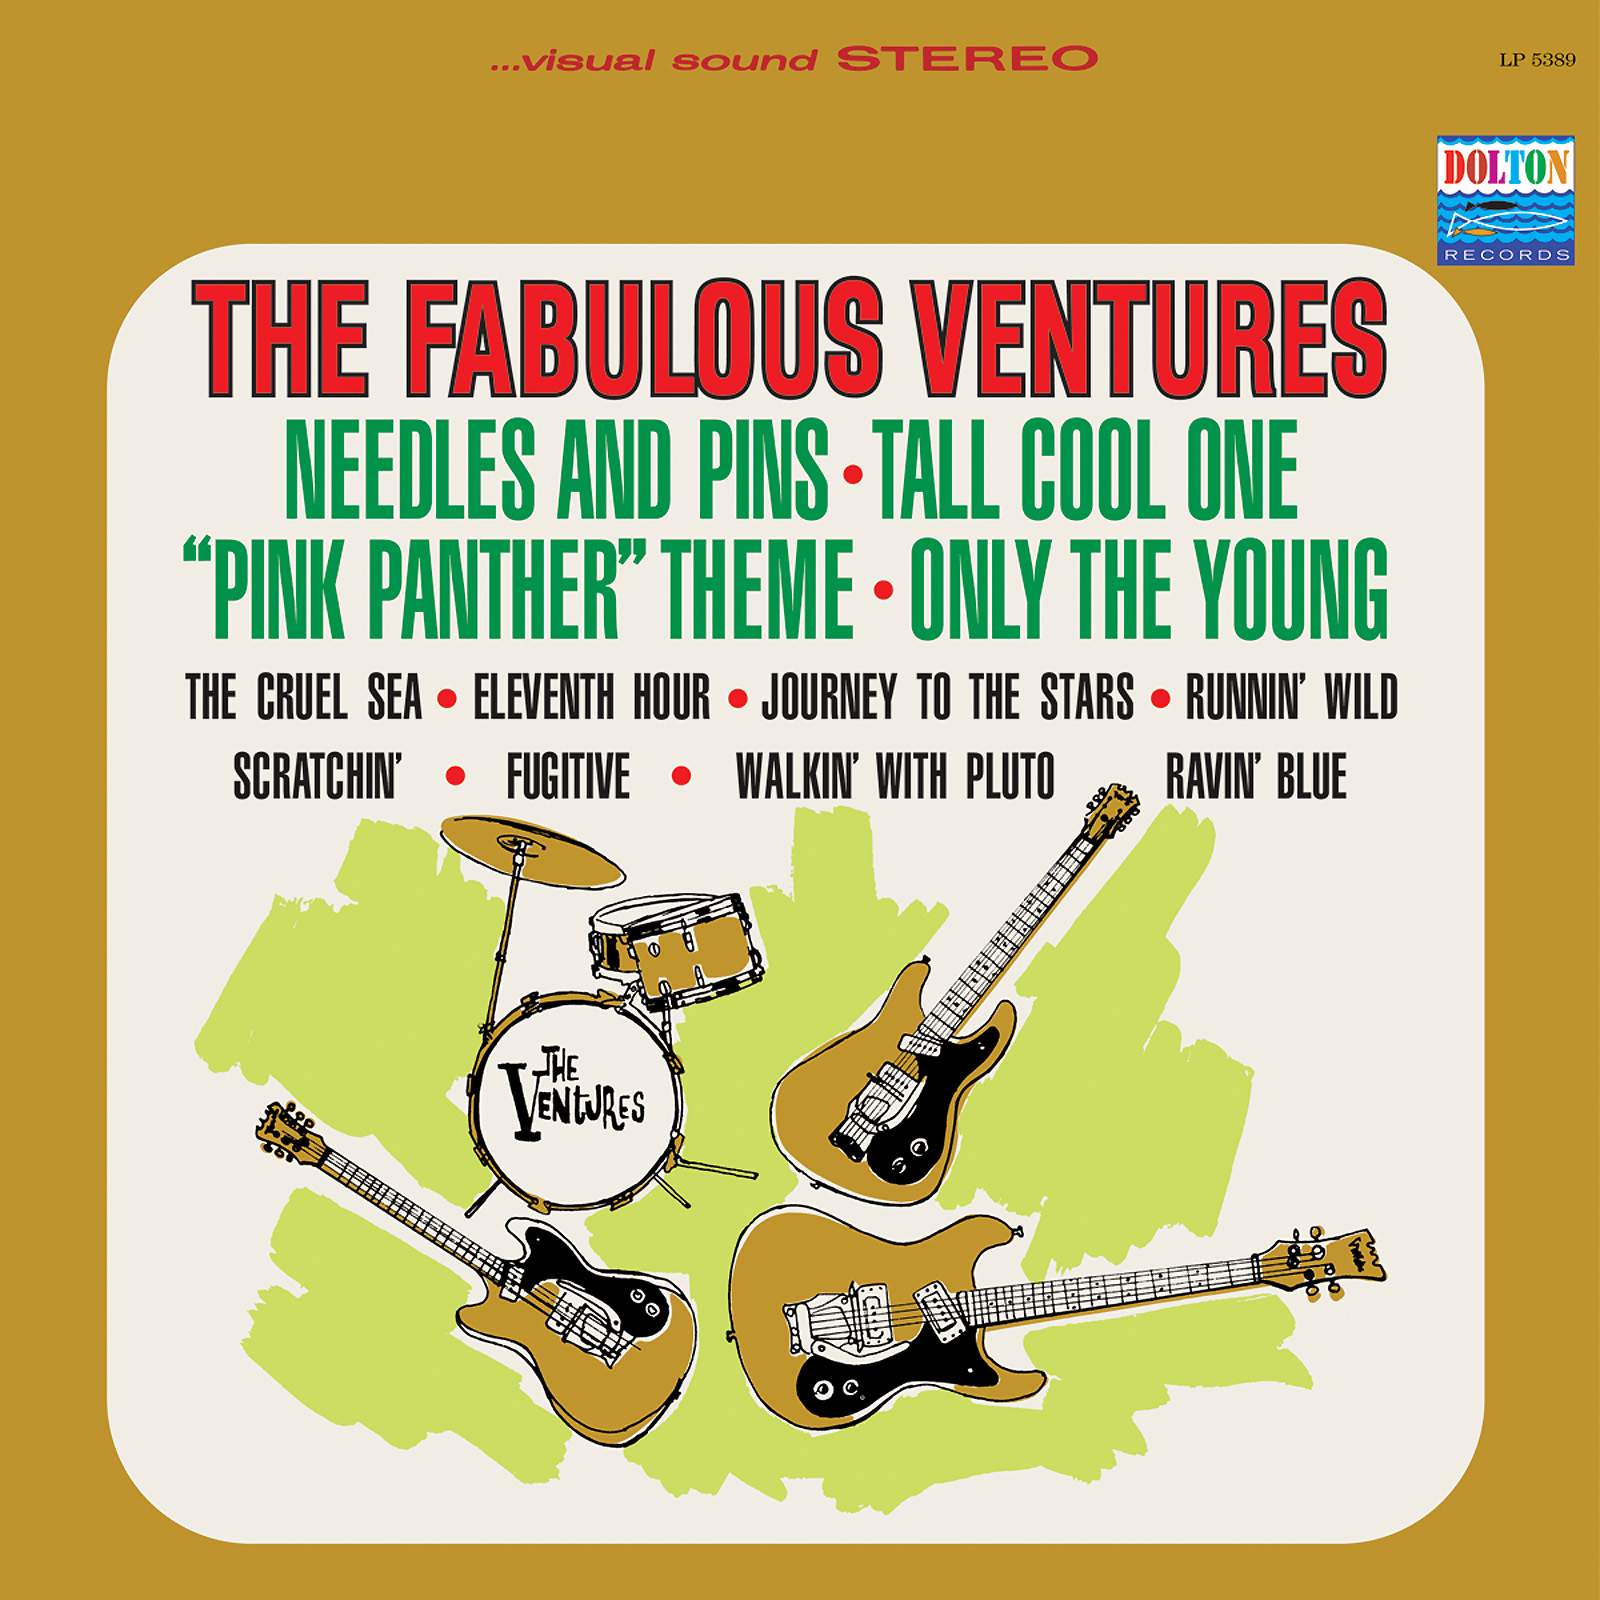 Ventures, The - The Fabulous Ventures LIMITED EDITION Colored Vinyl LP